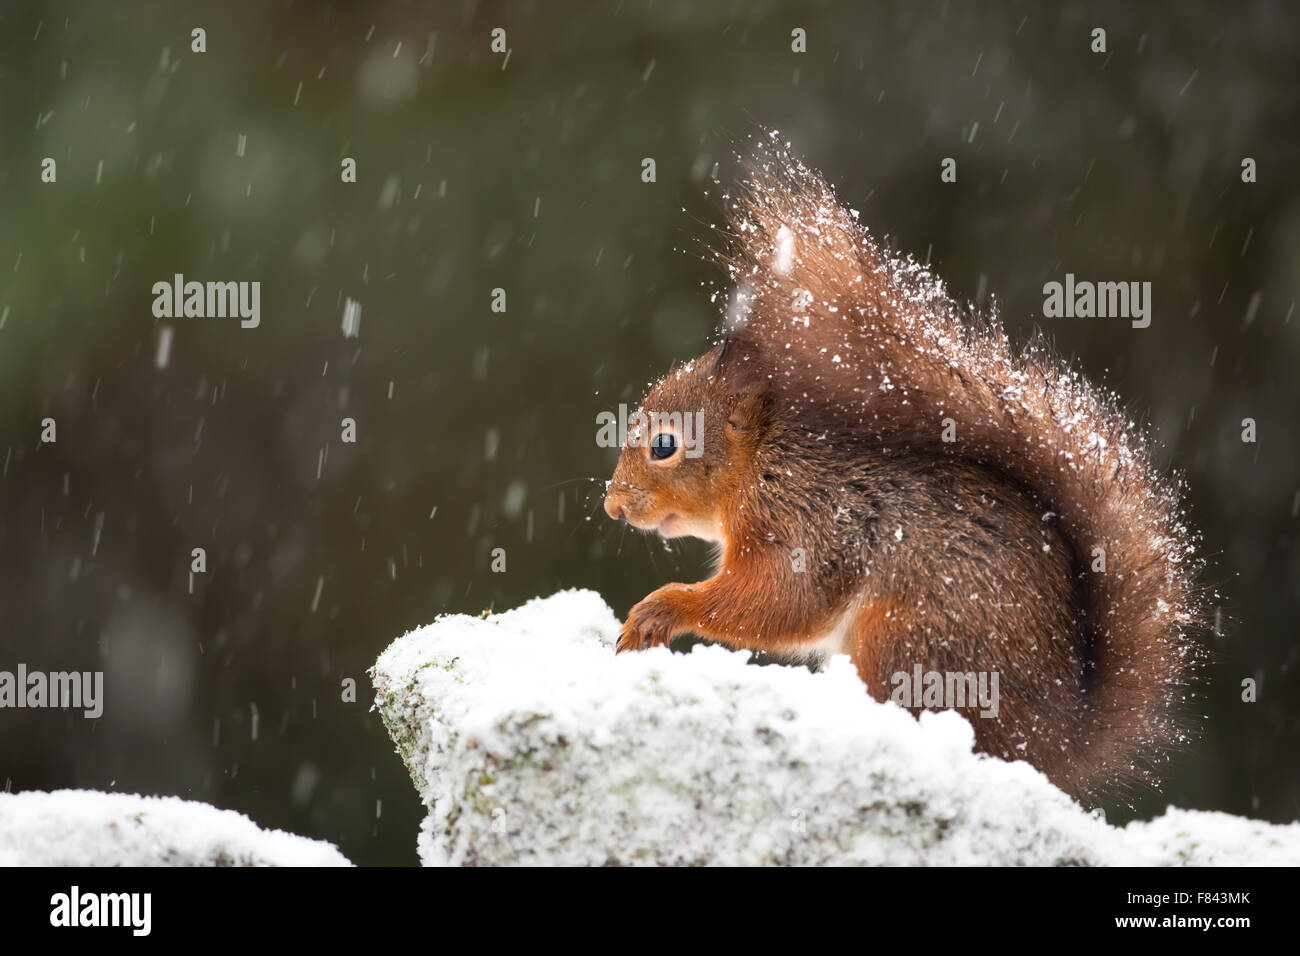 Cute red squirrel in the falling snow, winter in England - Stock Image